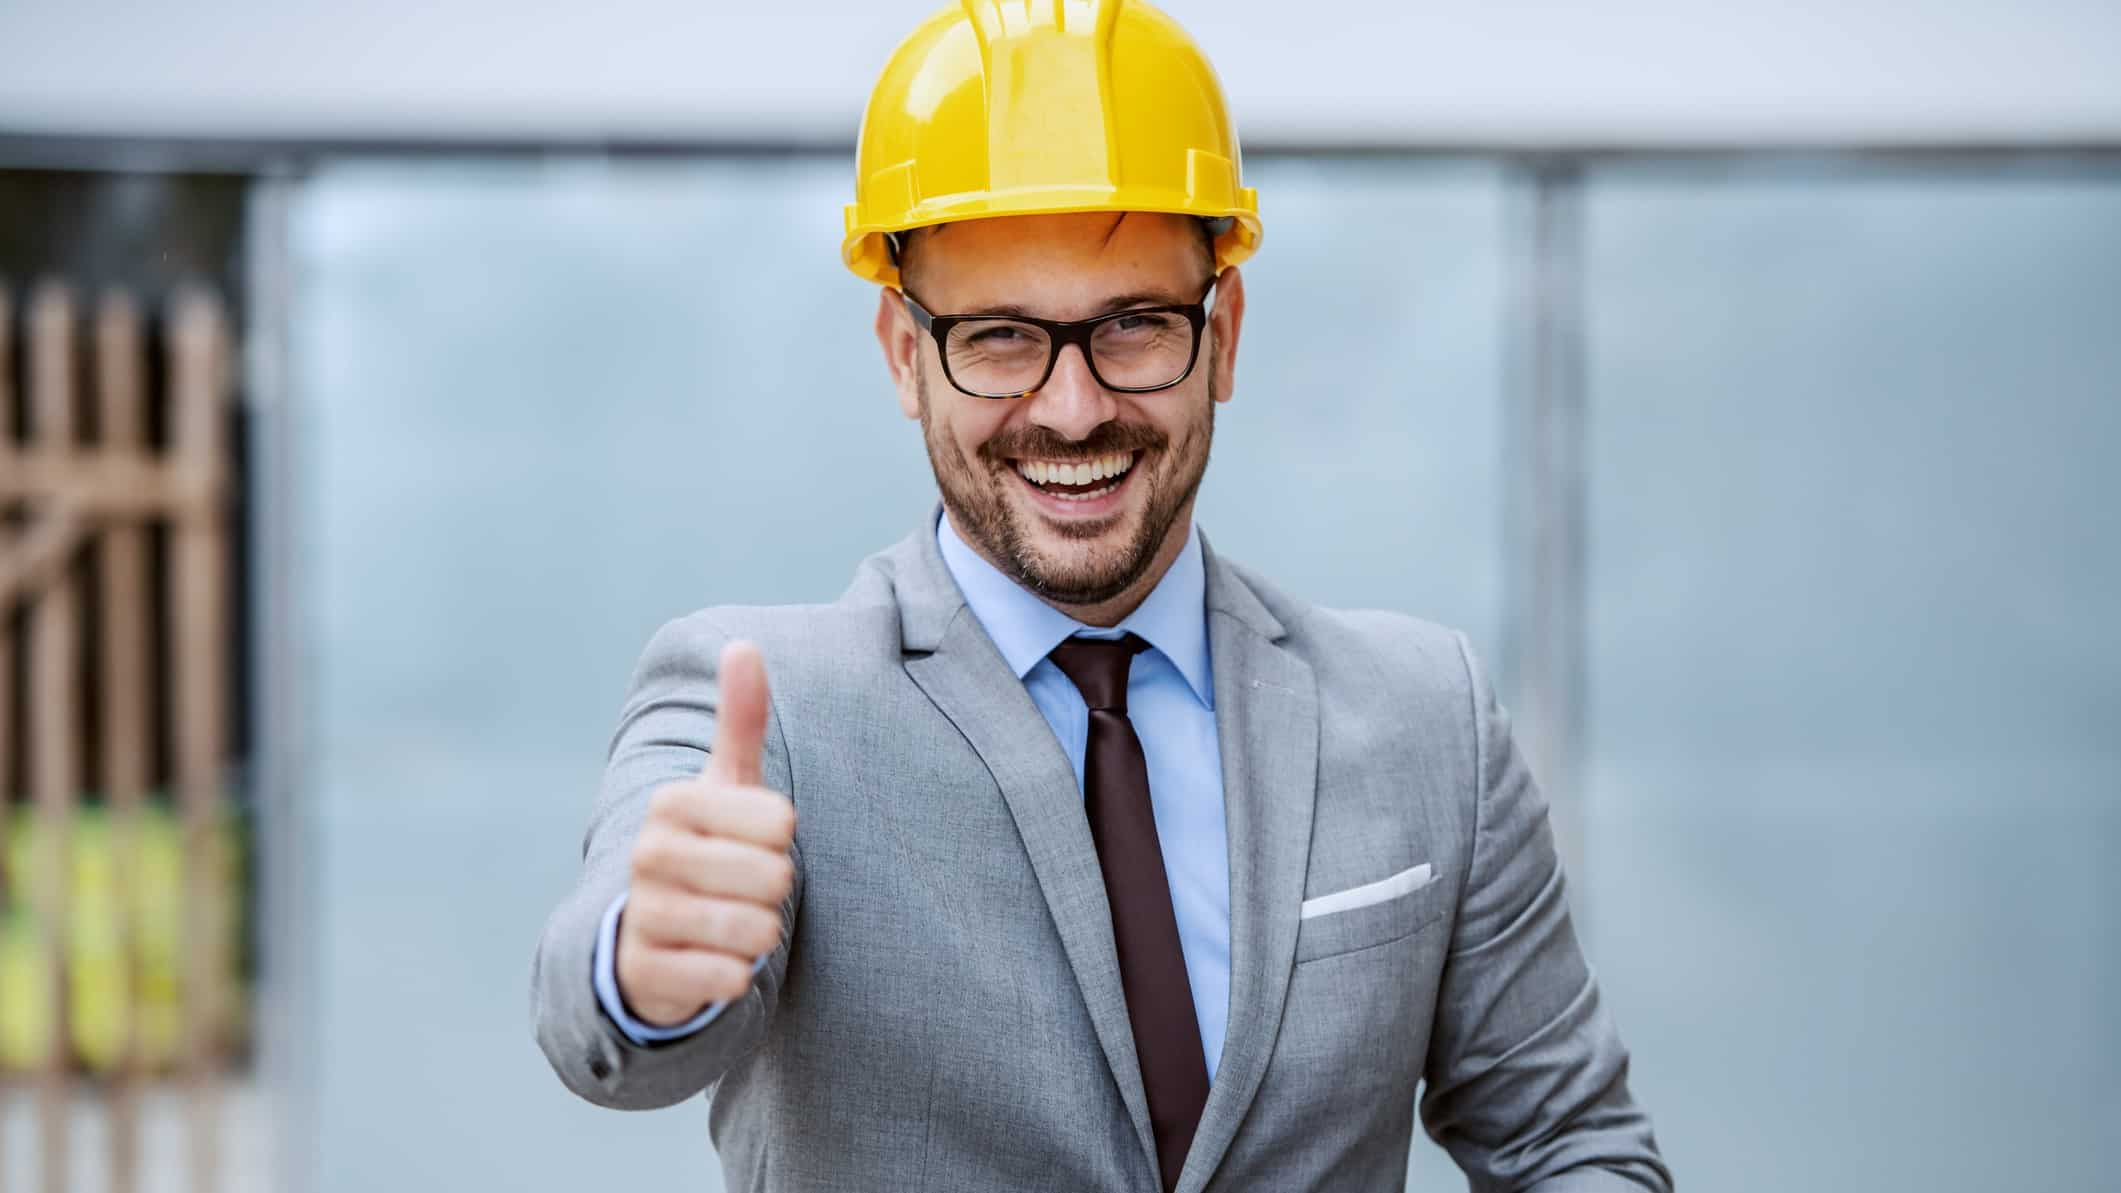 rising asx share price represented my man in hard hat giving thumbs up